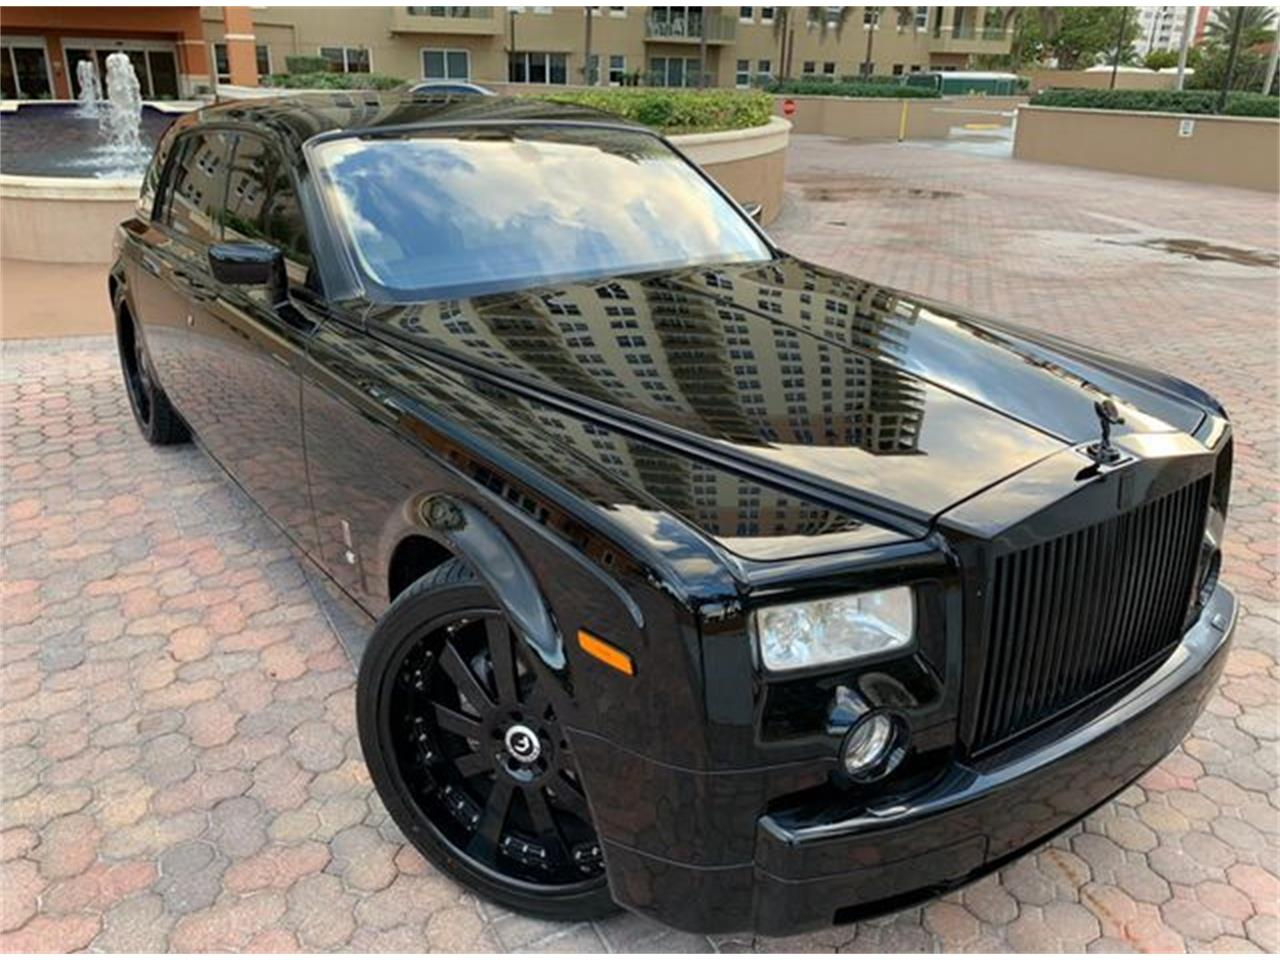 2006 Rolls-Royce Phantom for sale in Valley Park, MO – photo 78